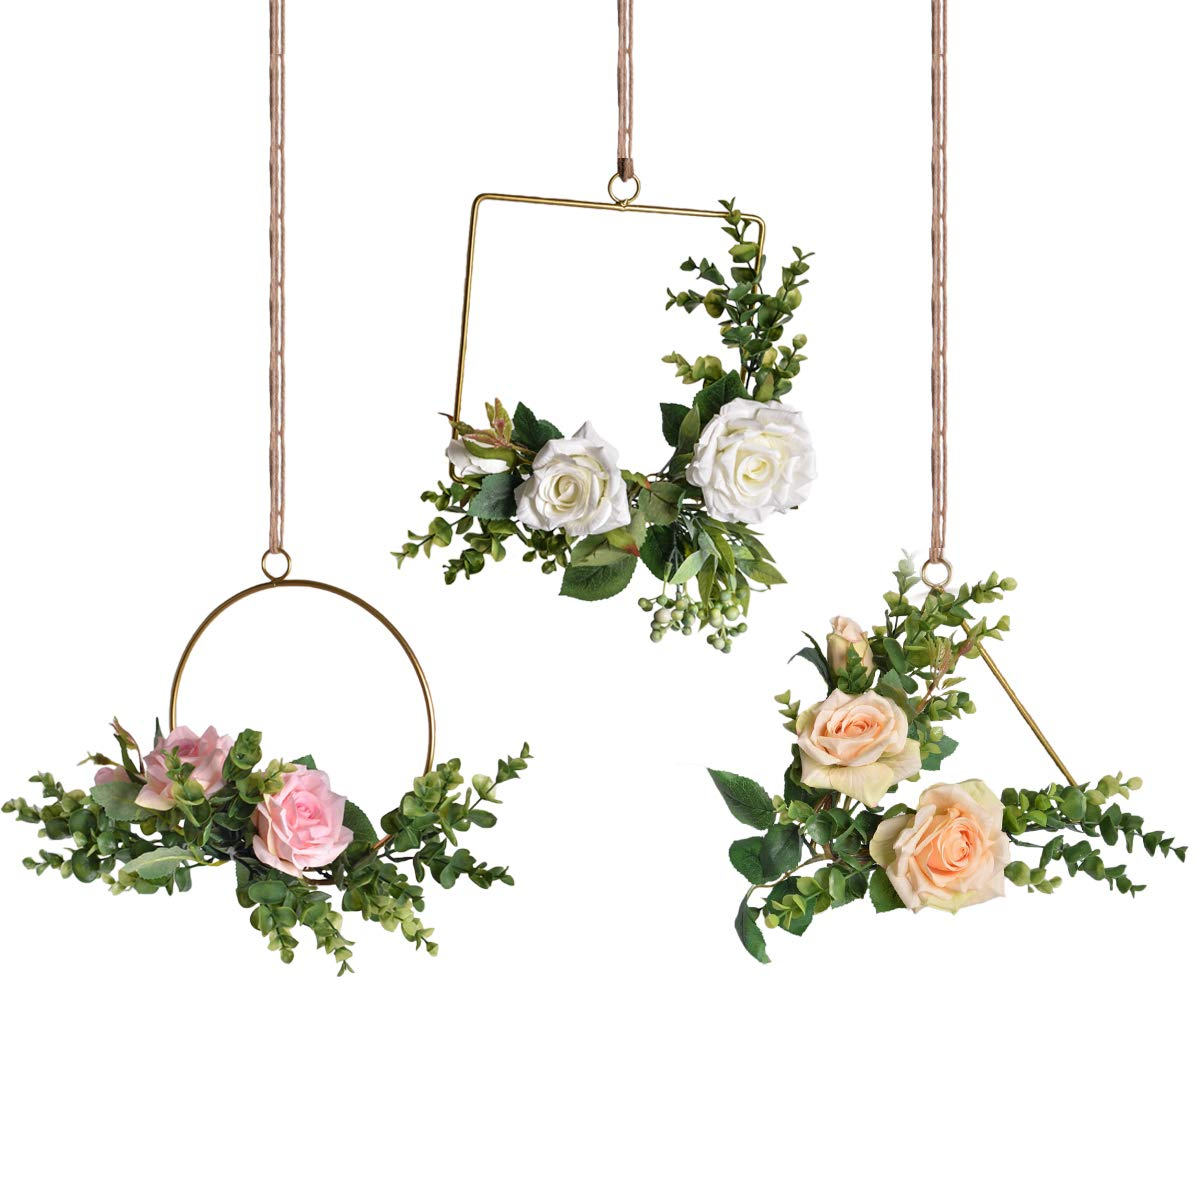 Pauwer Floral Hoop Wreath Set of 3 Artificial Rose Flower and Eucalyptus Vine Wreath for Wedding Backdrop Wall Decor by Pauwer